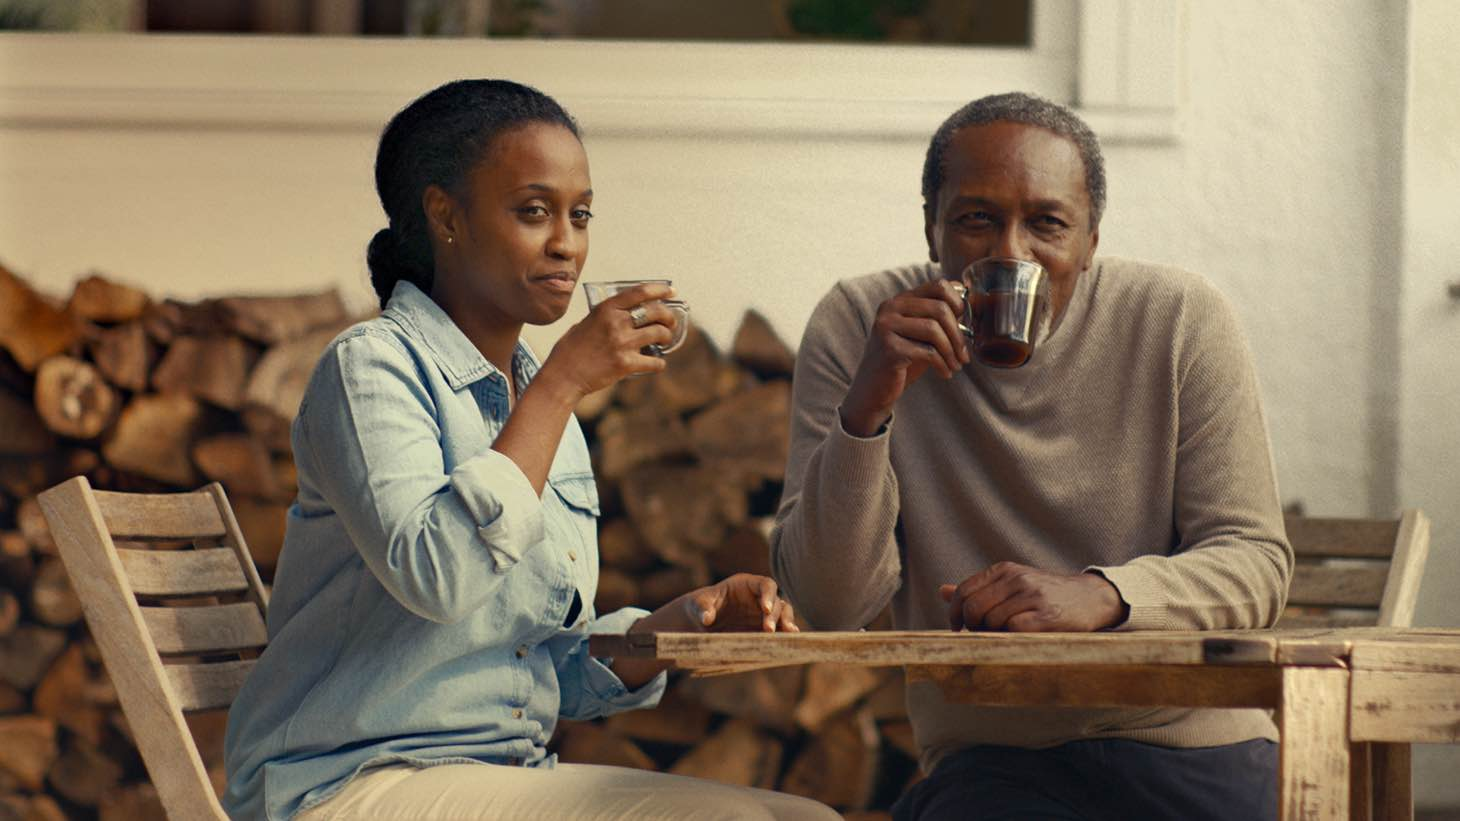 savour the simplest moments nescafe gold conversation with a cup of coffee